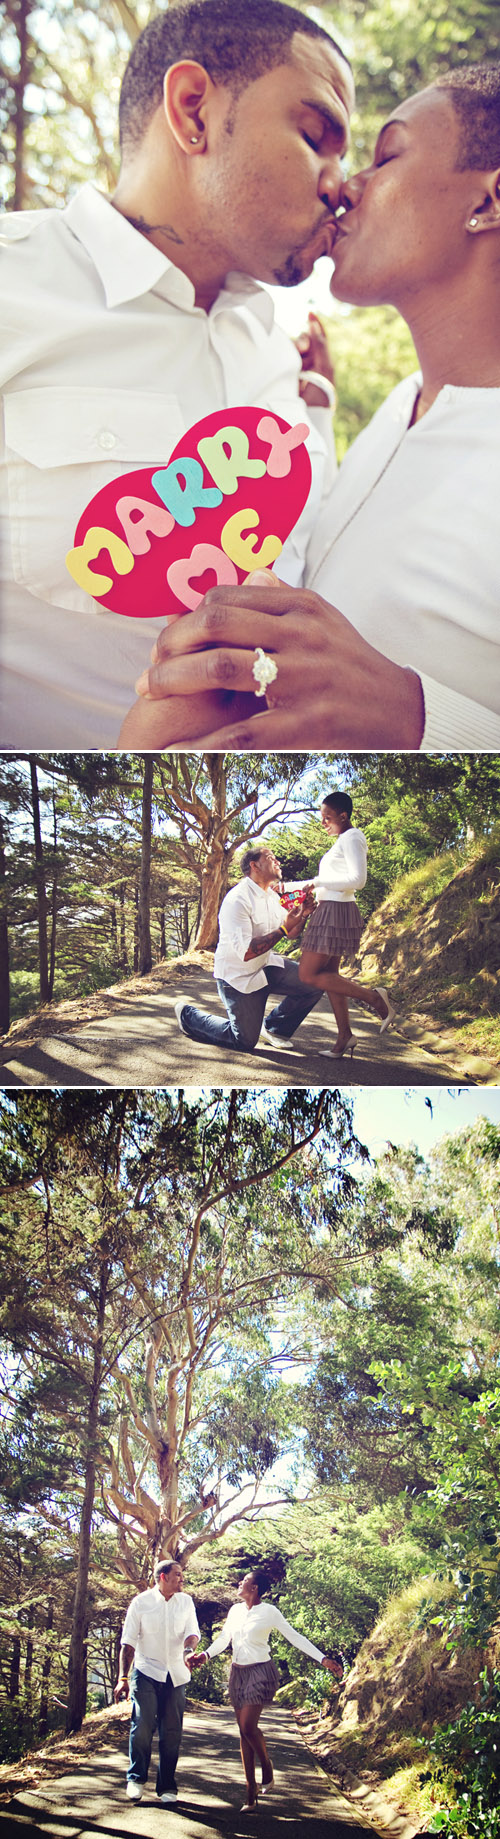 San Francisco marriage proposal and engagement photo shoot, images by Taken by Light Photography